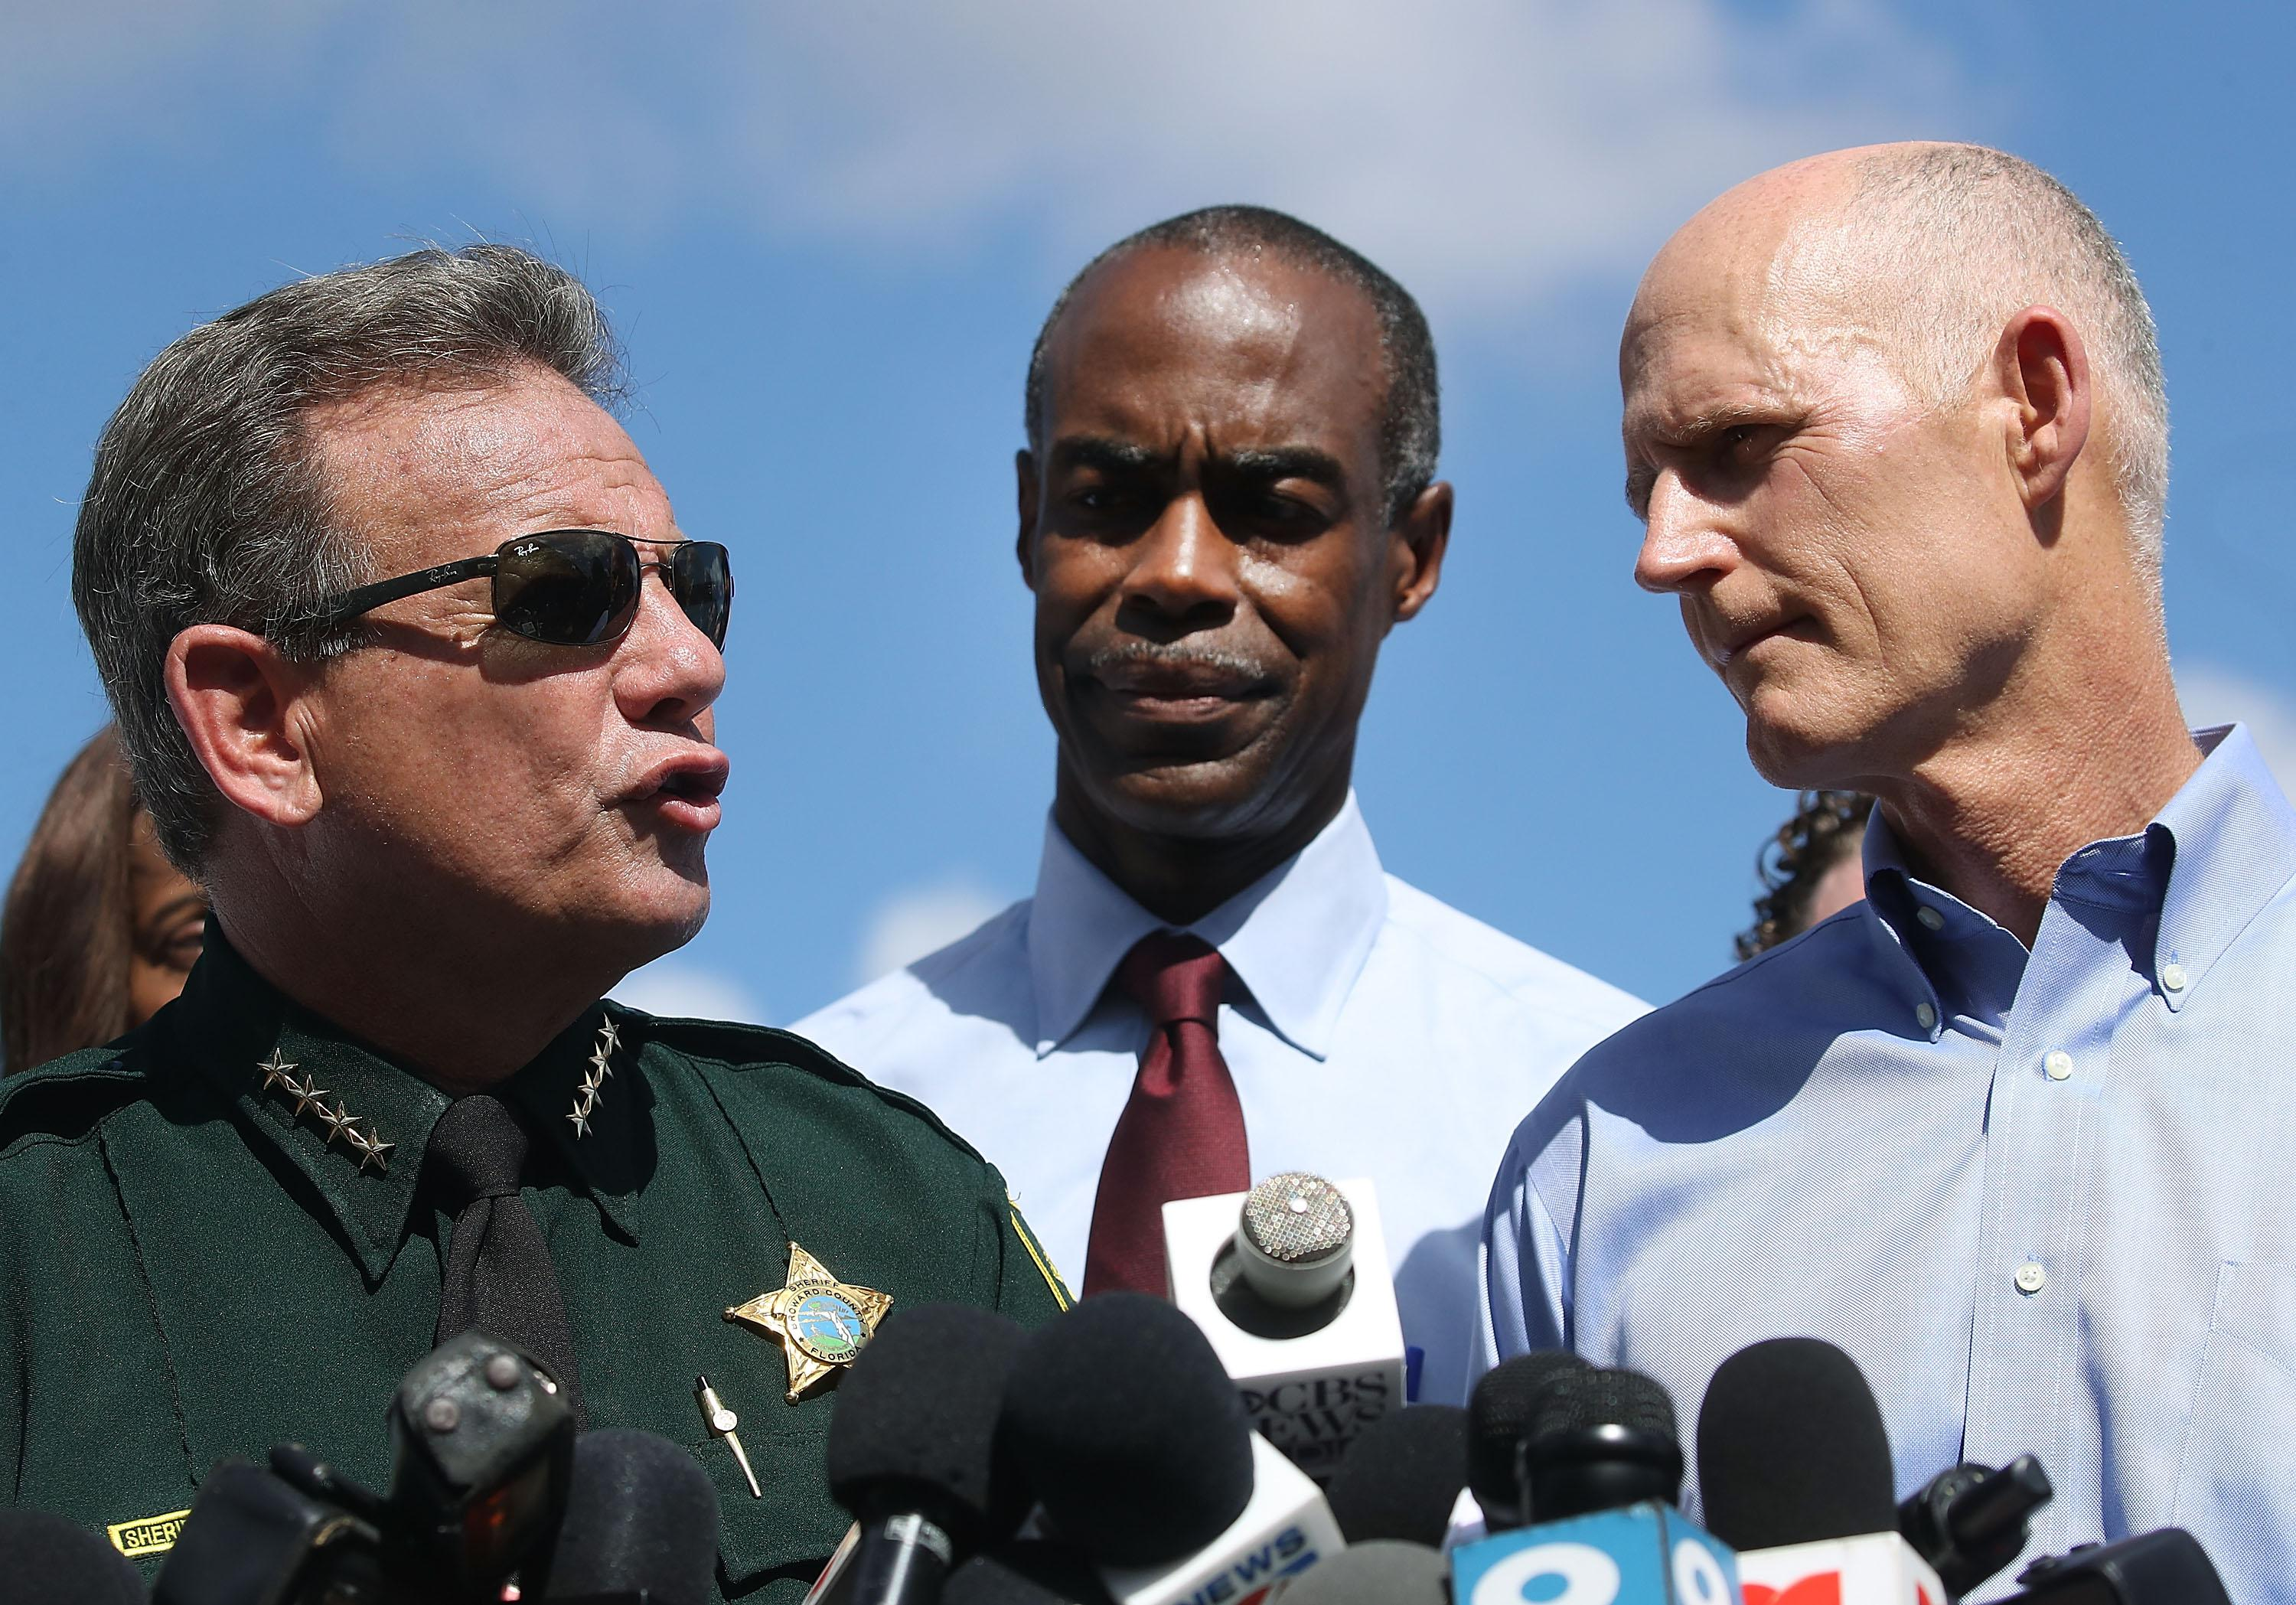 Florida Governor Rick Scott (R), Broward County Superintendent of Schools, Robert W. Runcie (C) and Broward County Sheriff, Scott Israel (L) on February 15, 2018 in Parkland, Florida.